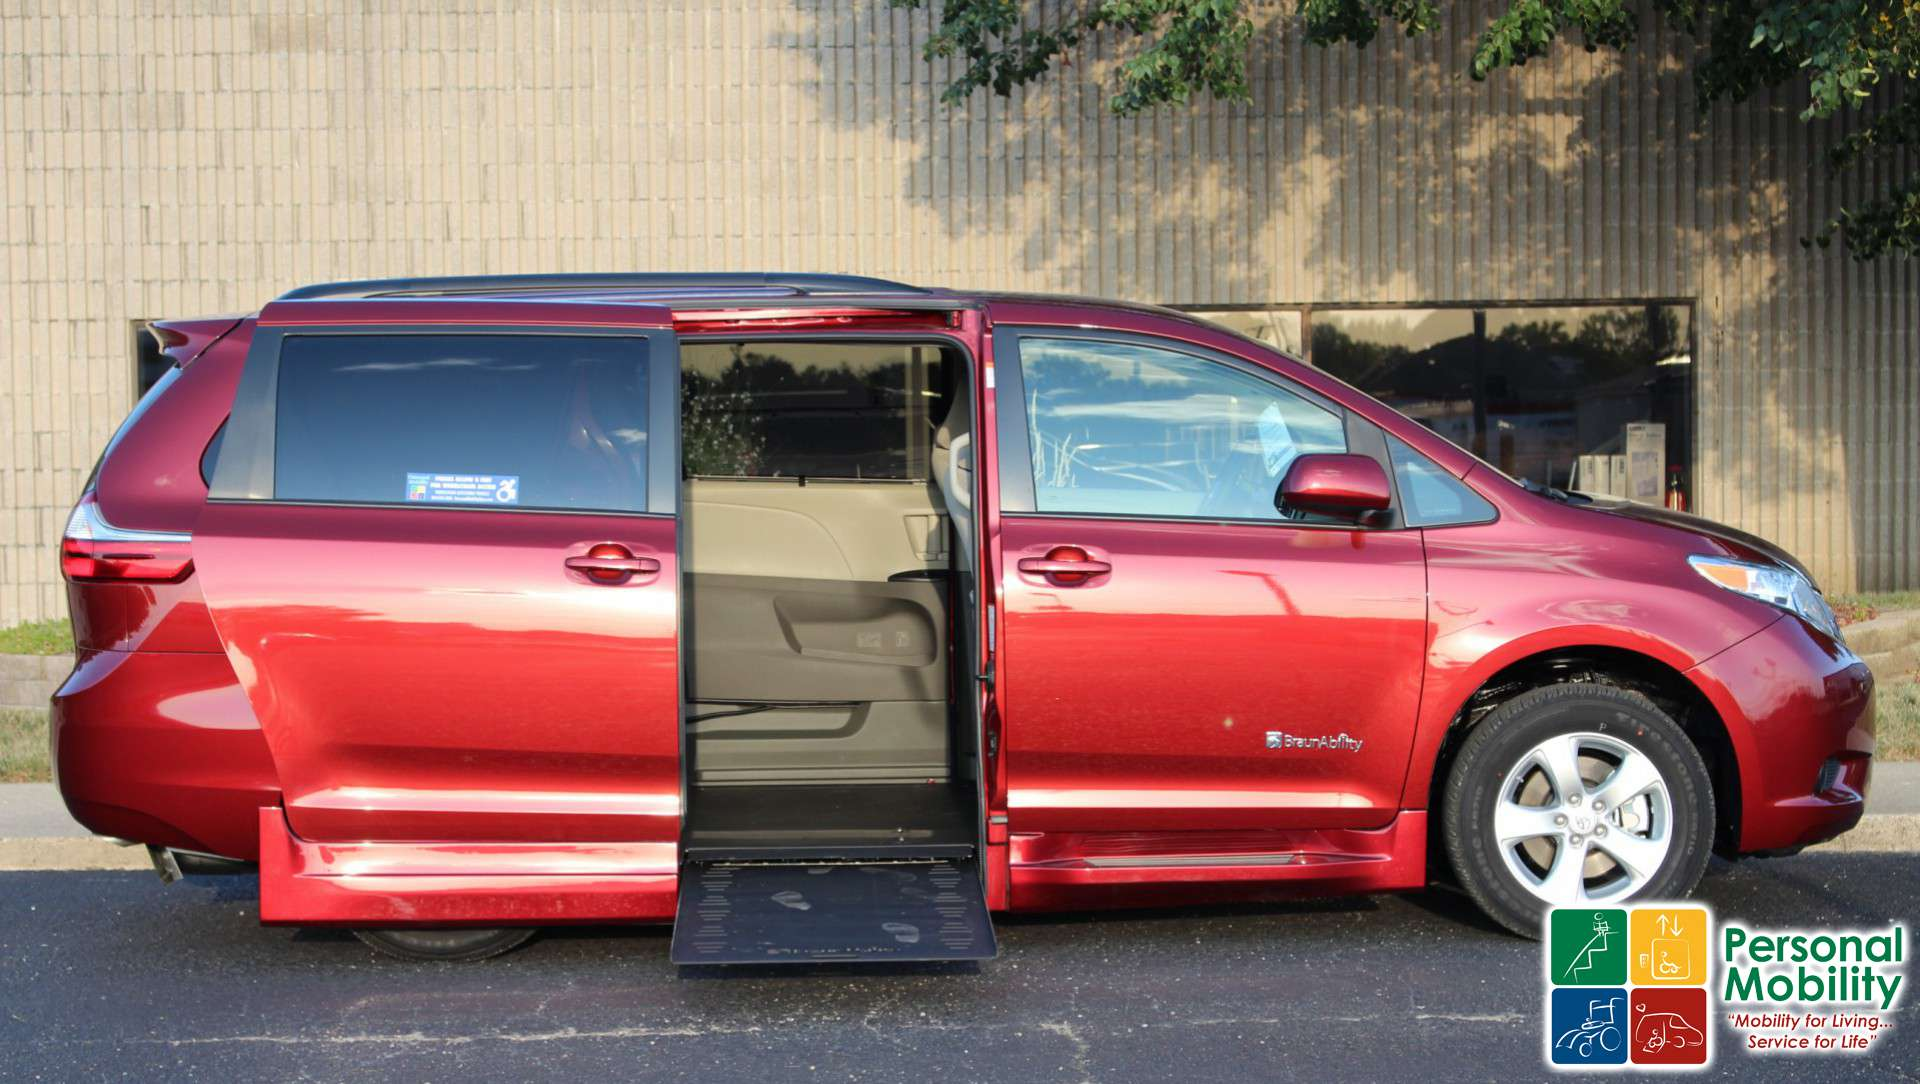 Toyota Sienna Service Manual: Diagnosis system